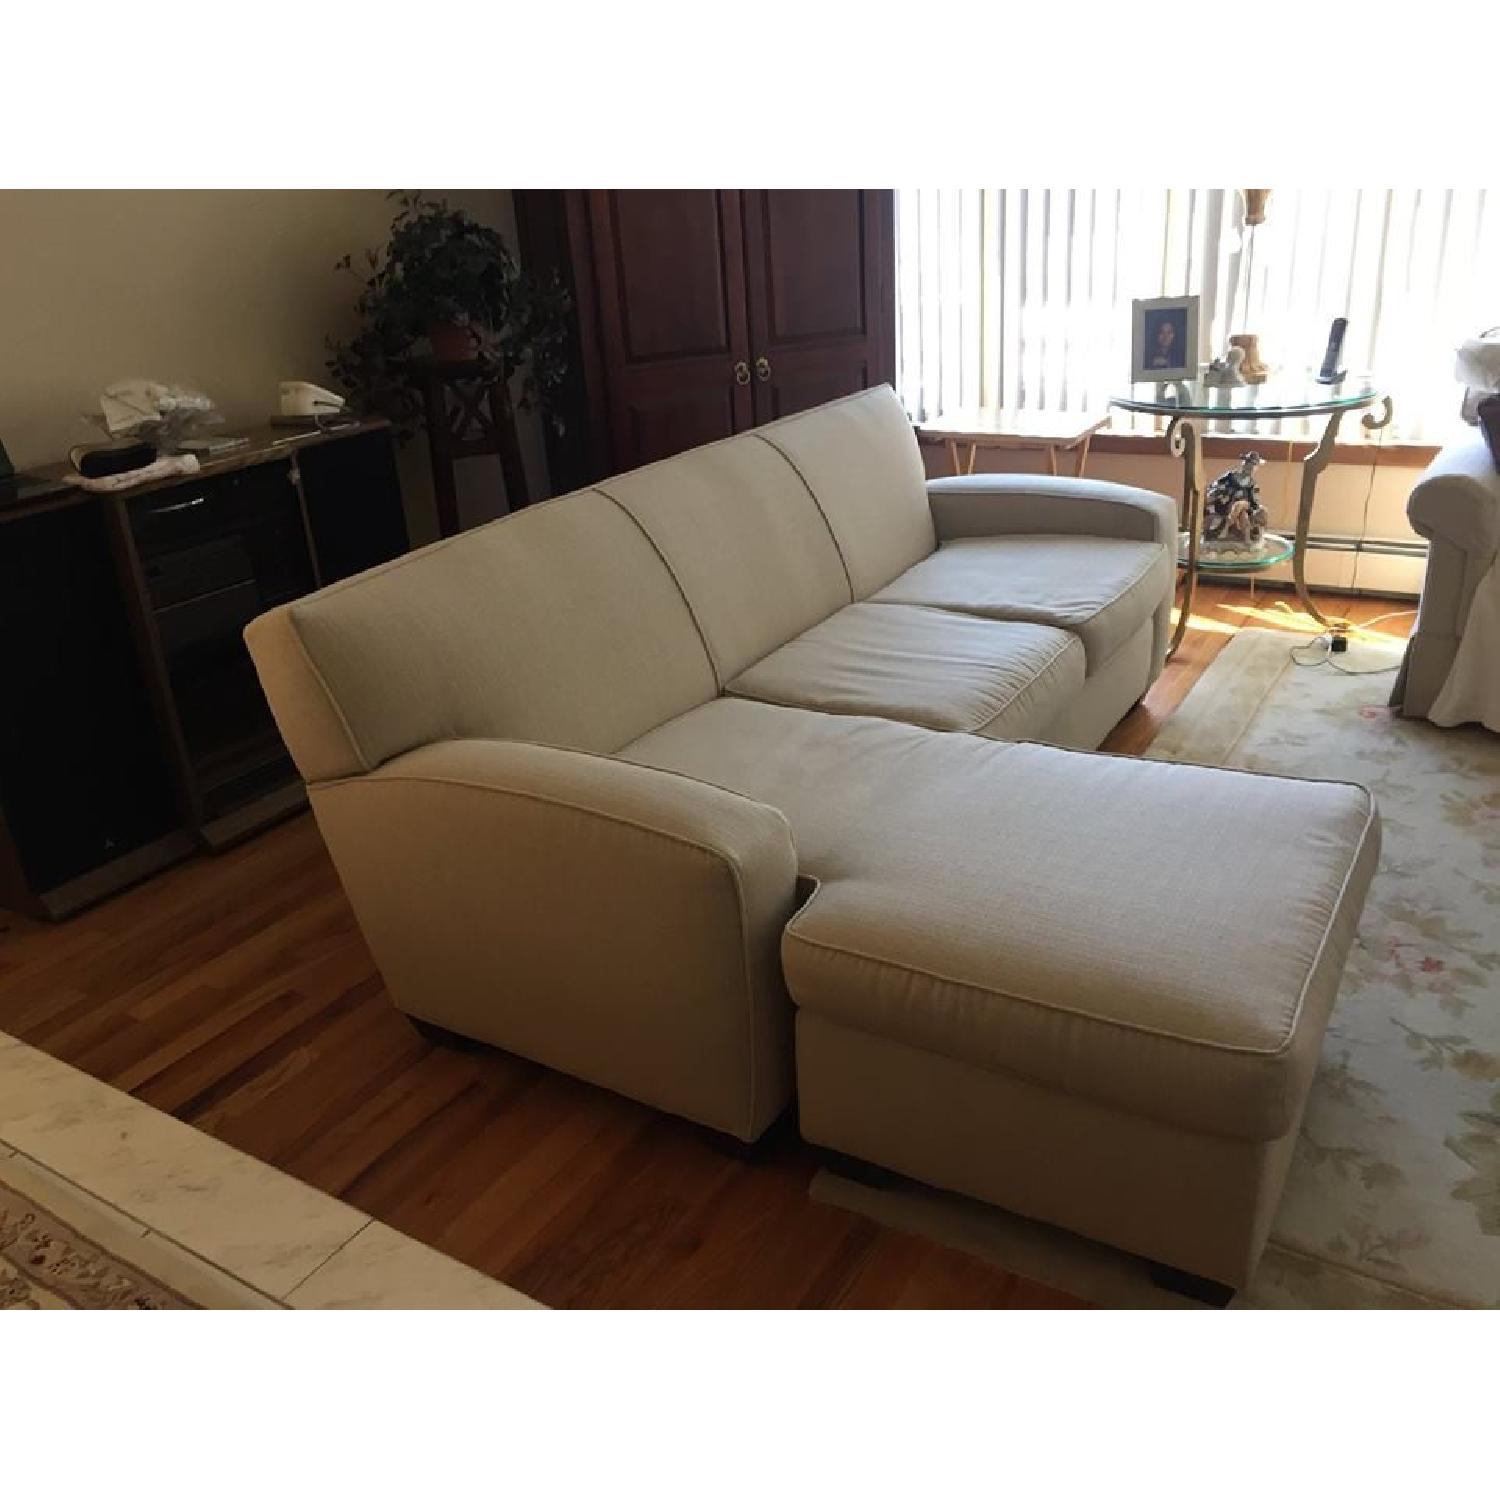 ... 2 Piece Sectional Sofa W/ Floating Chaise 0 ...